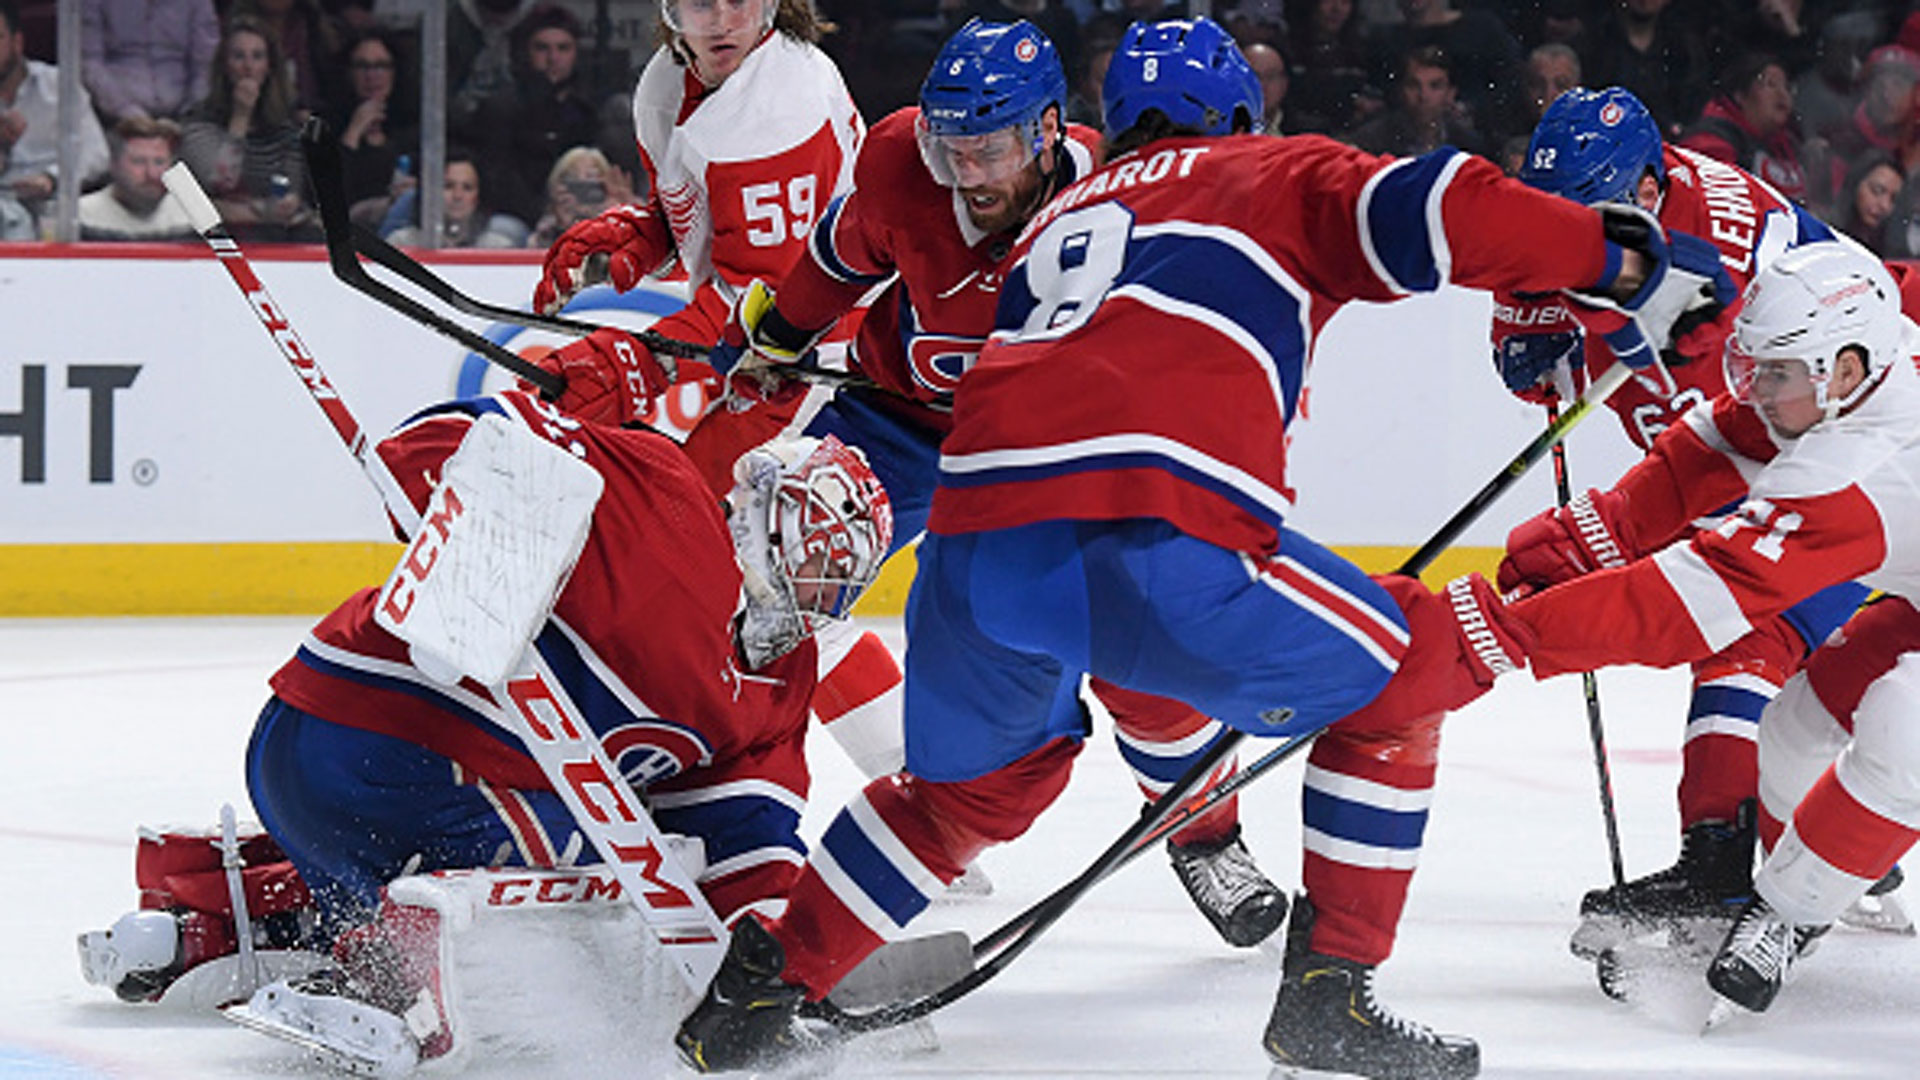 Discipline key for Canadiens against Lightning's high-octane offence